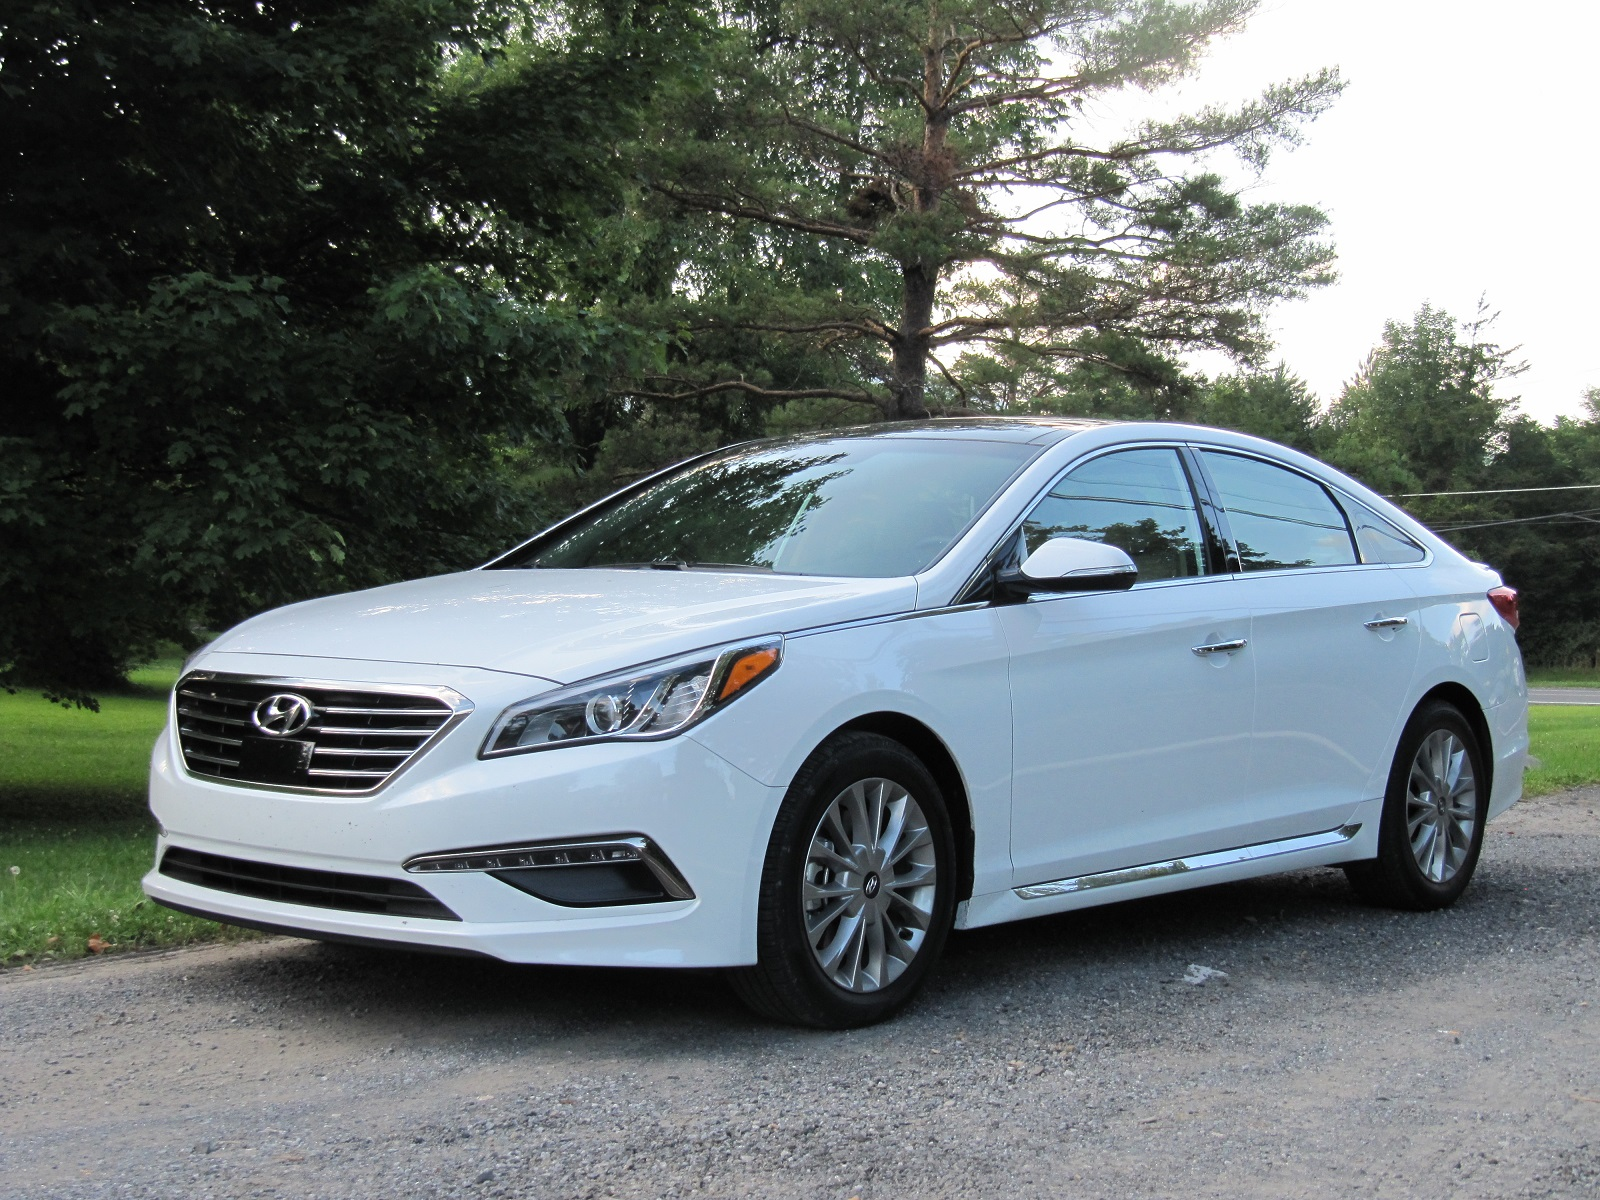 2015 hyundai sonata limited test drive hudson valley ny aug 2014 100475218. Black Bedroom Furniture Sets. Home Design Ideas